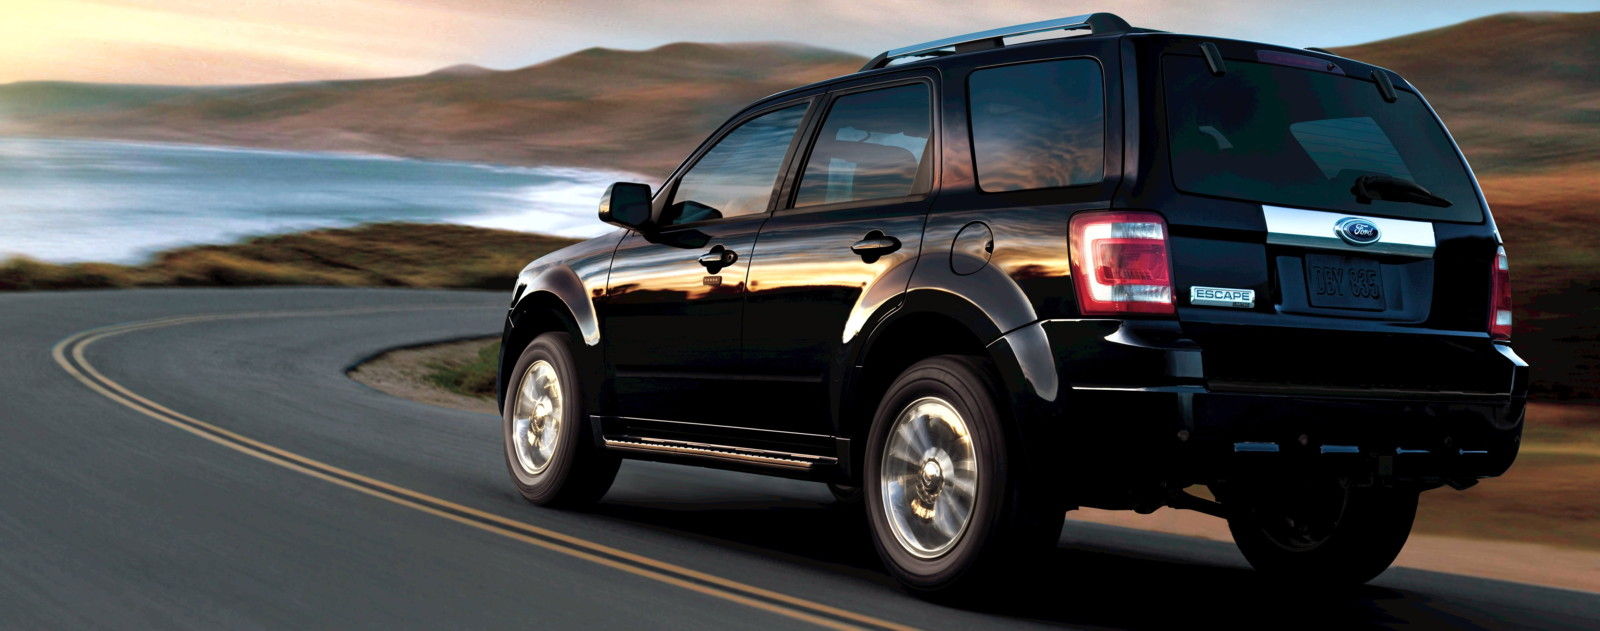 2010 ford escape review ratings specs prices and. Black Bedroom Furniture Sets. Home Design Ideas